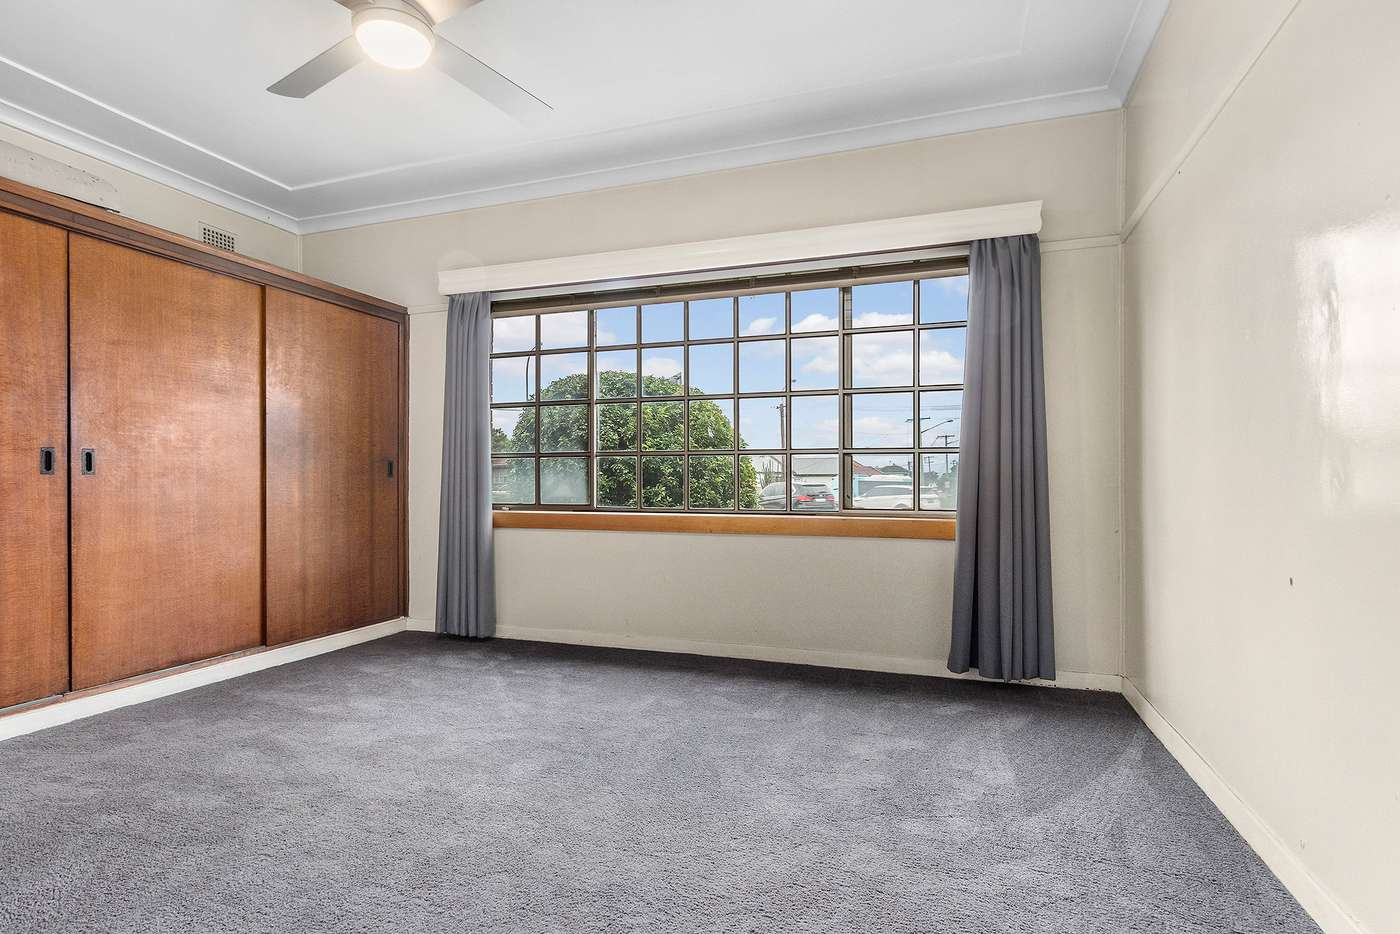 Sixth view of Homely house listing, 1 Carnley Avenue, New Lambton NSW 2305